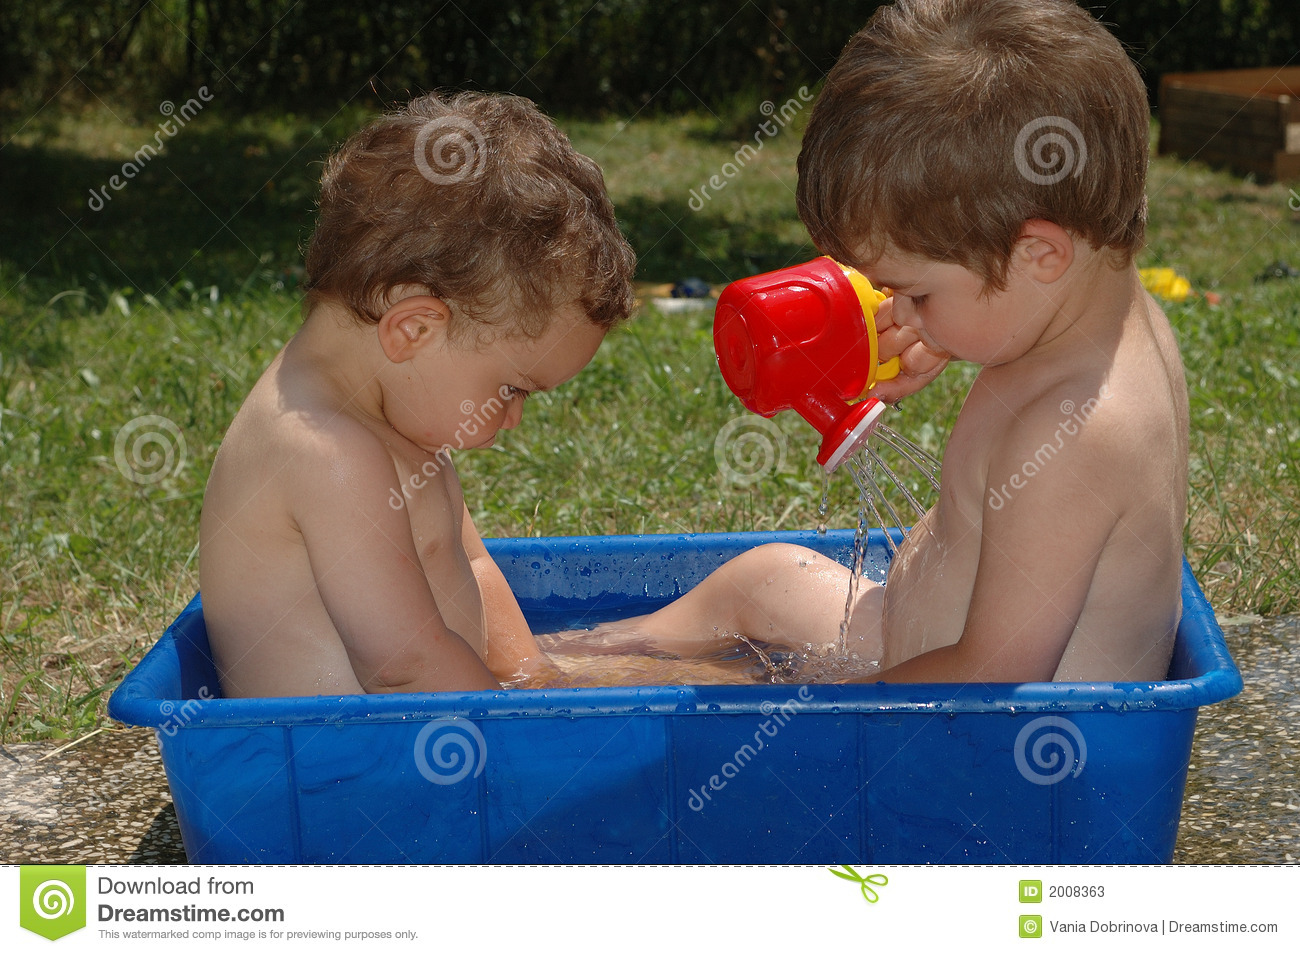 Two Boys Outside In Bath Tub Stock Image - Image of water, kids: 2008363